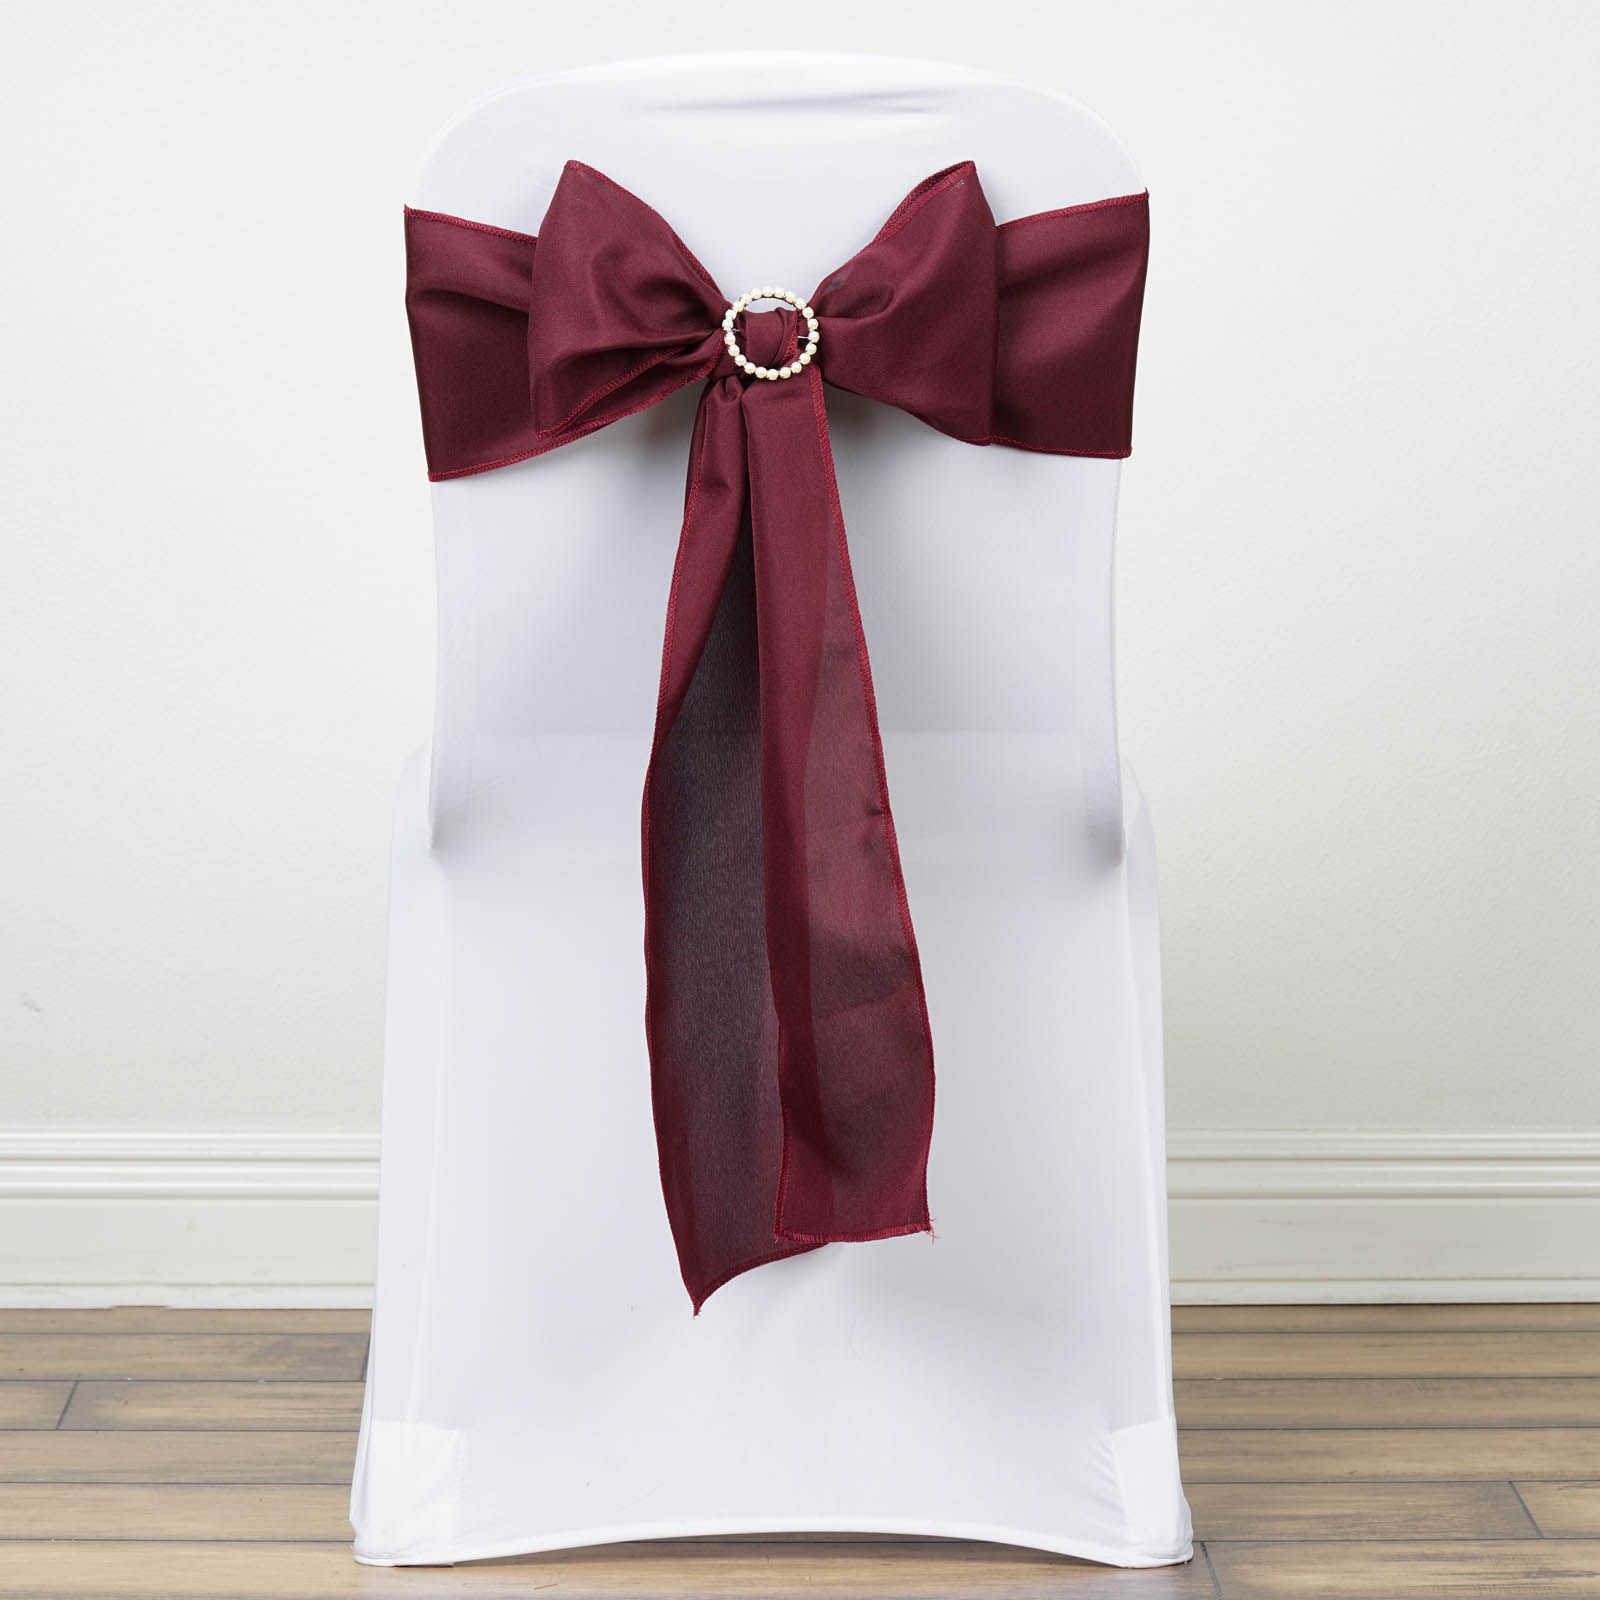 wedding chair covers with bows cover accessories 100 polyester sashes ties party